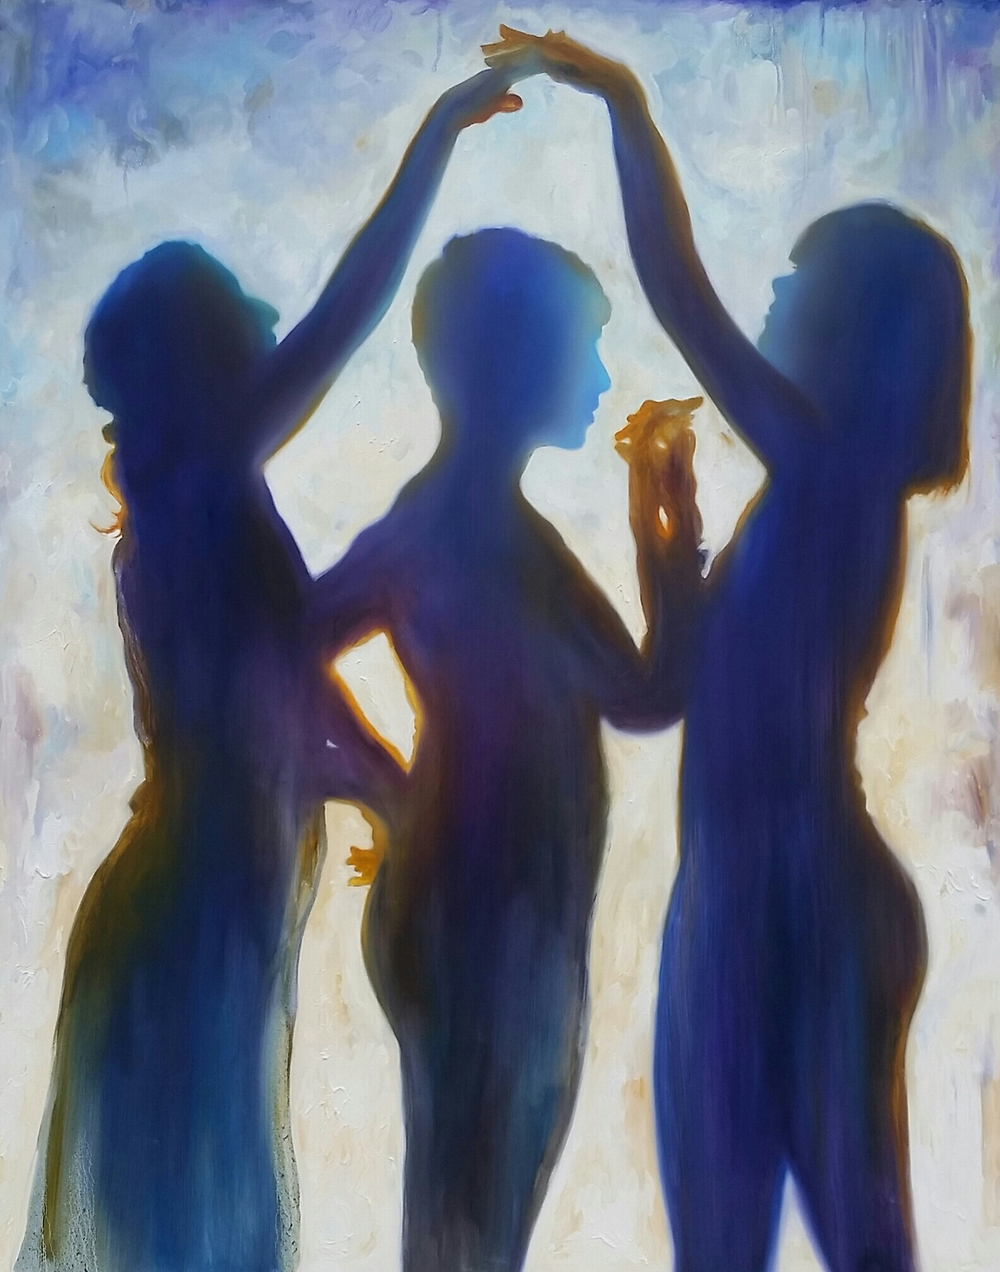 Dancers: The 3 Muses